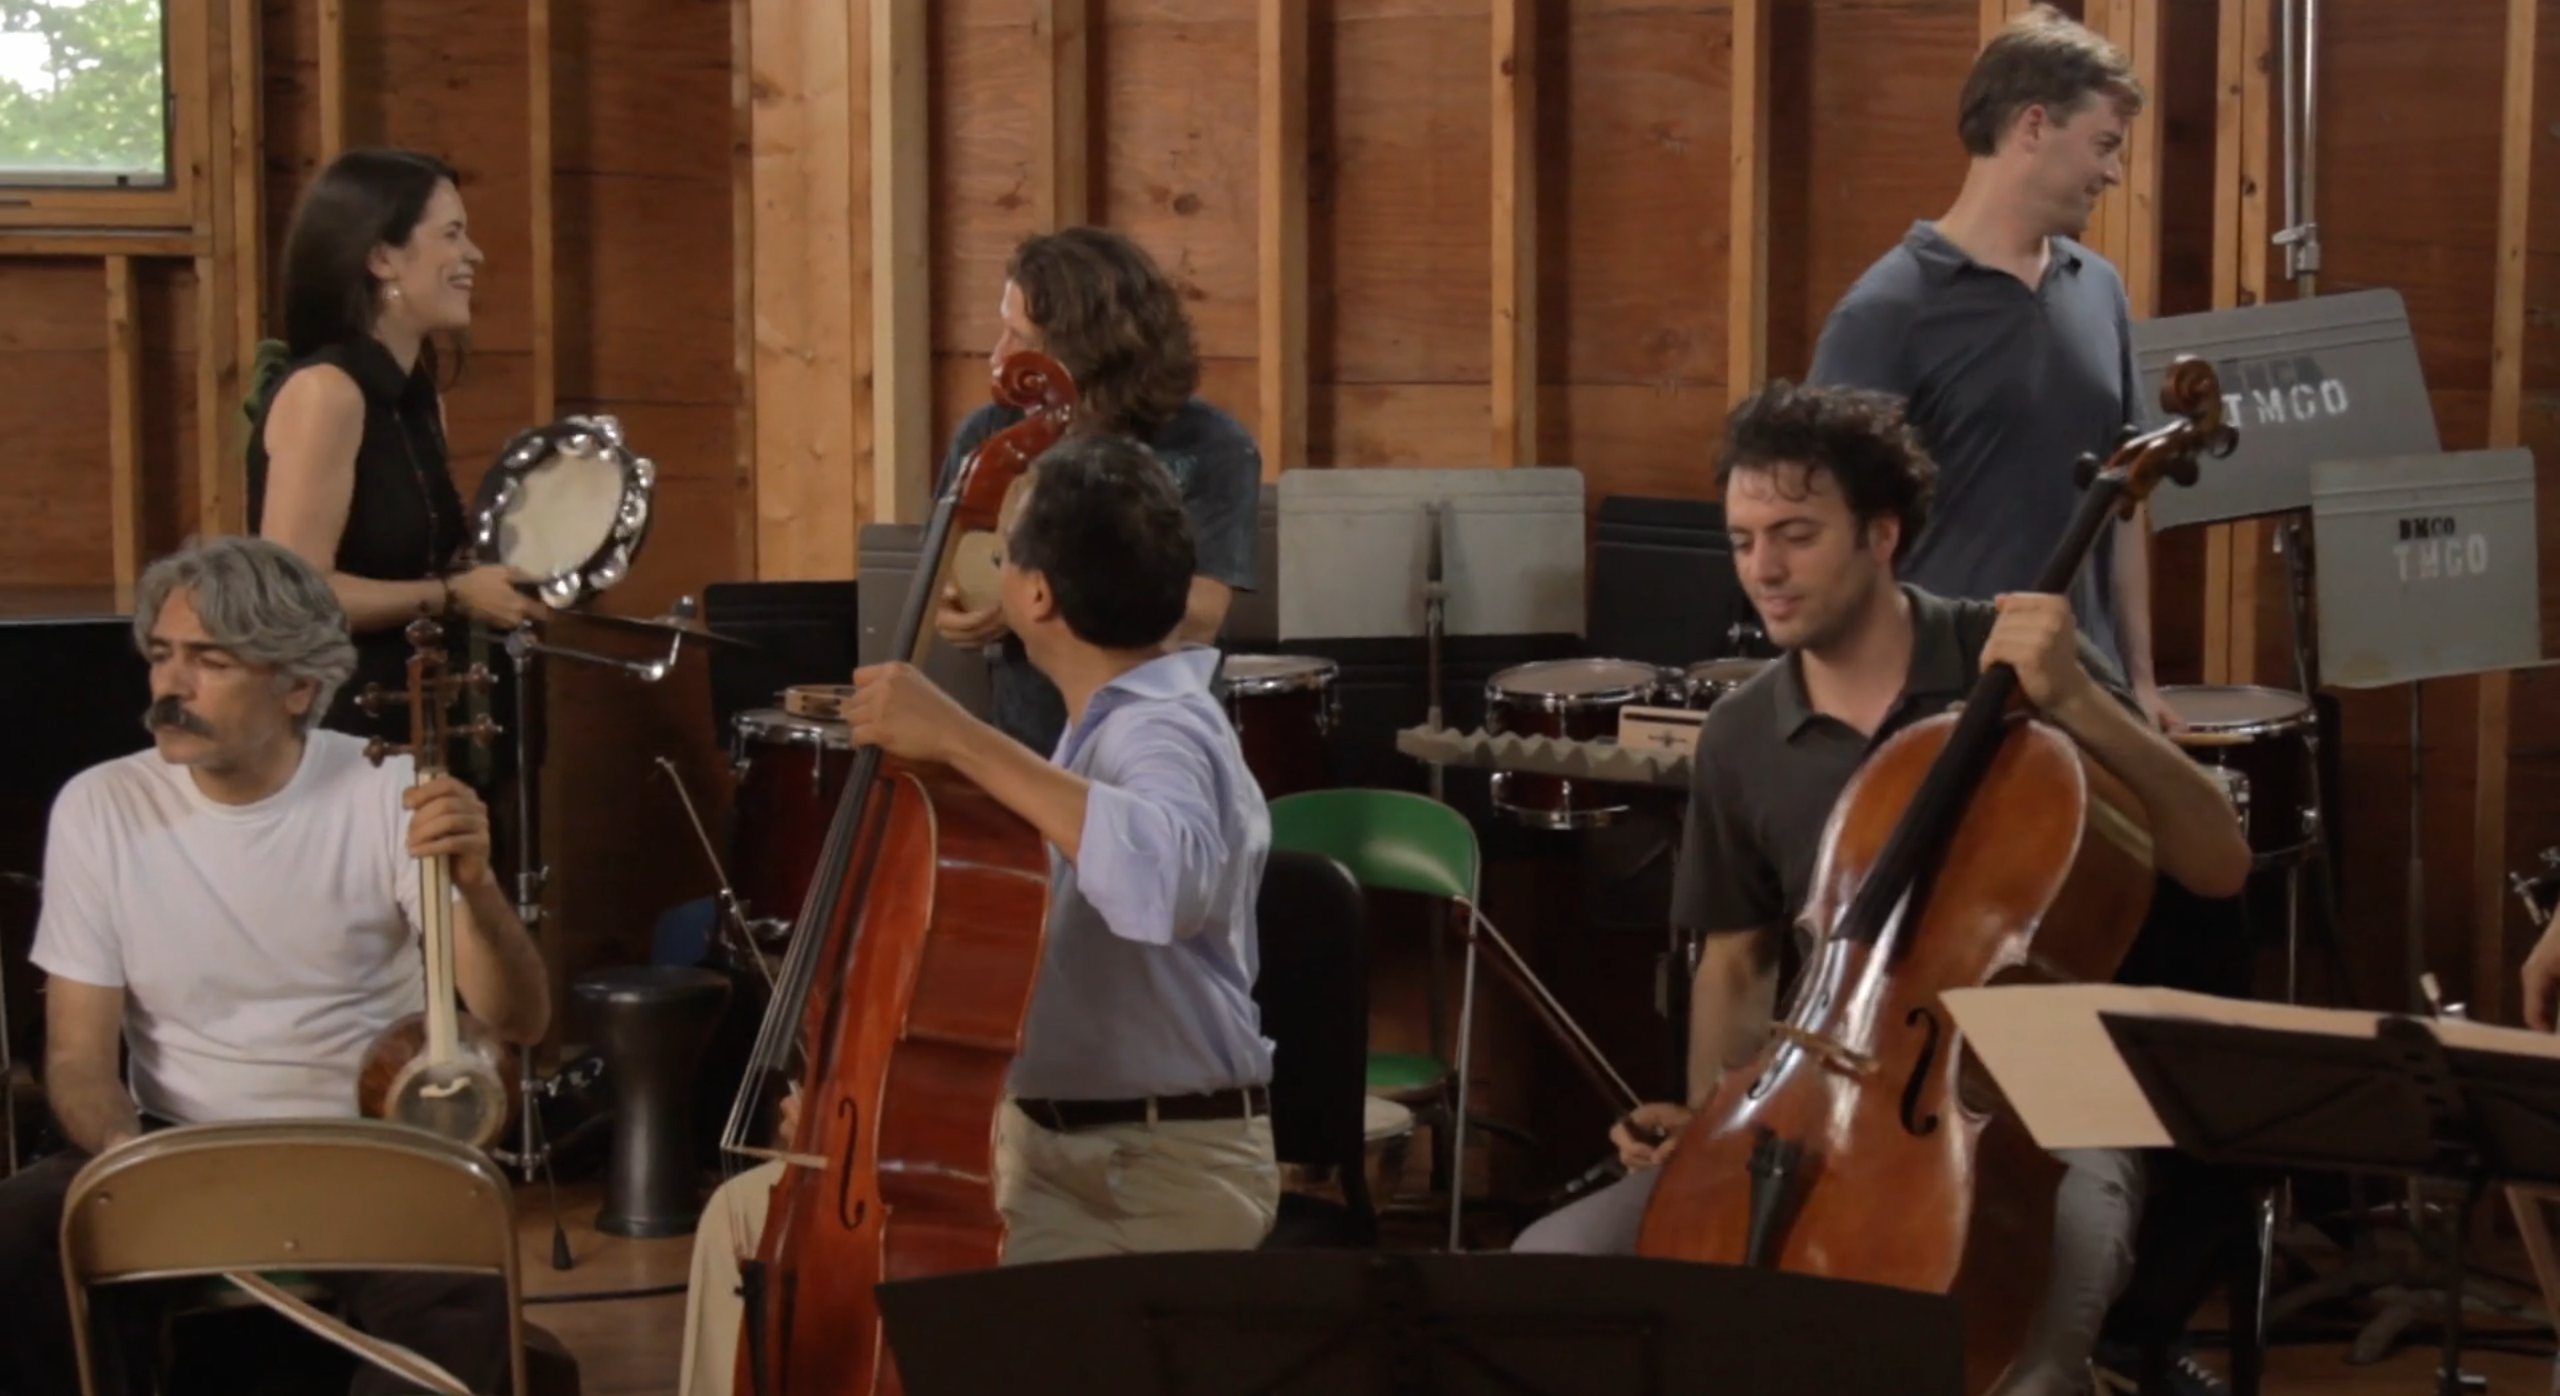 Exclusive: Instruments Collide in Eye-Popping Poster for Yo-Yo Ma's